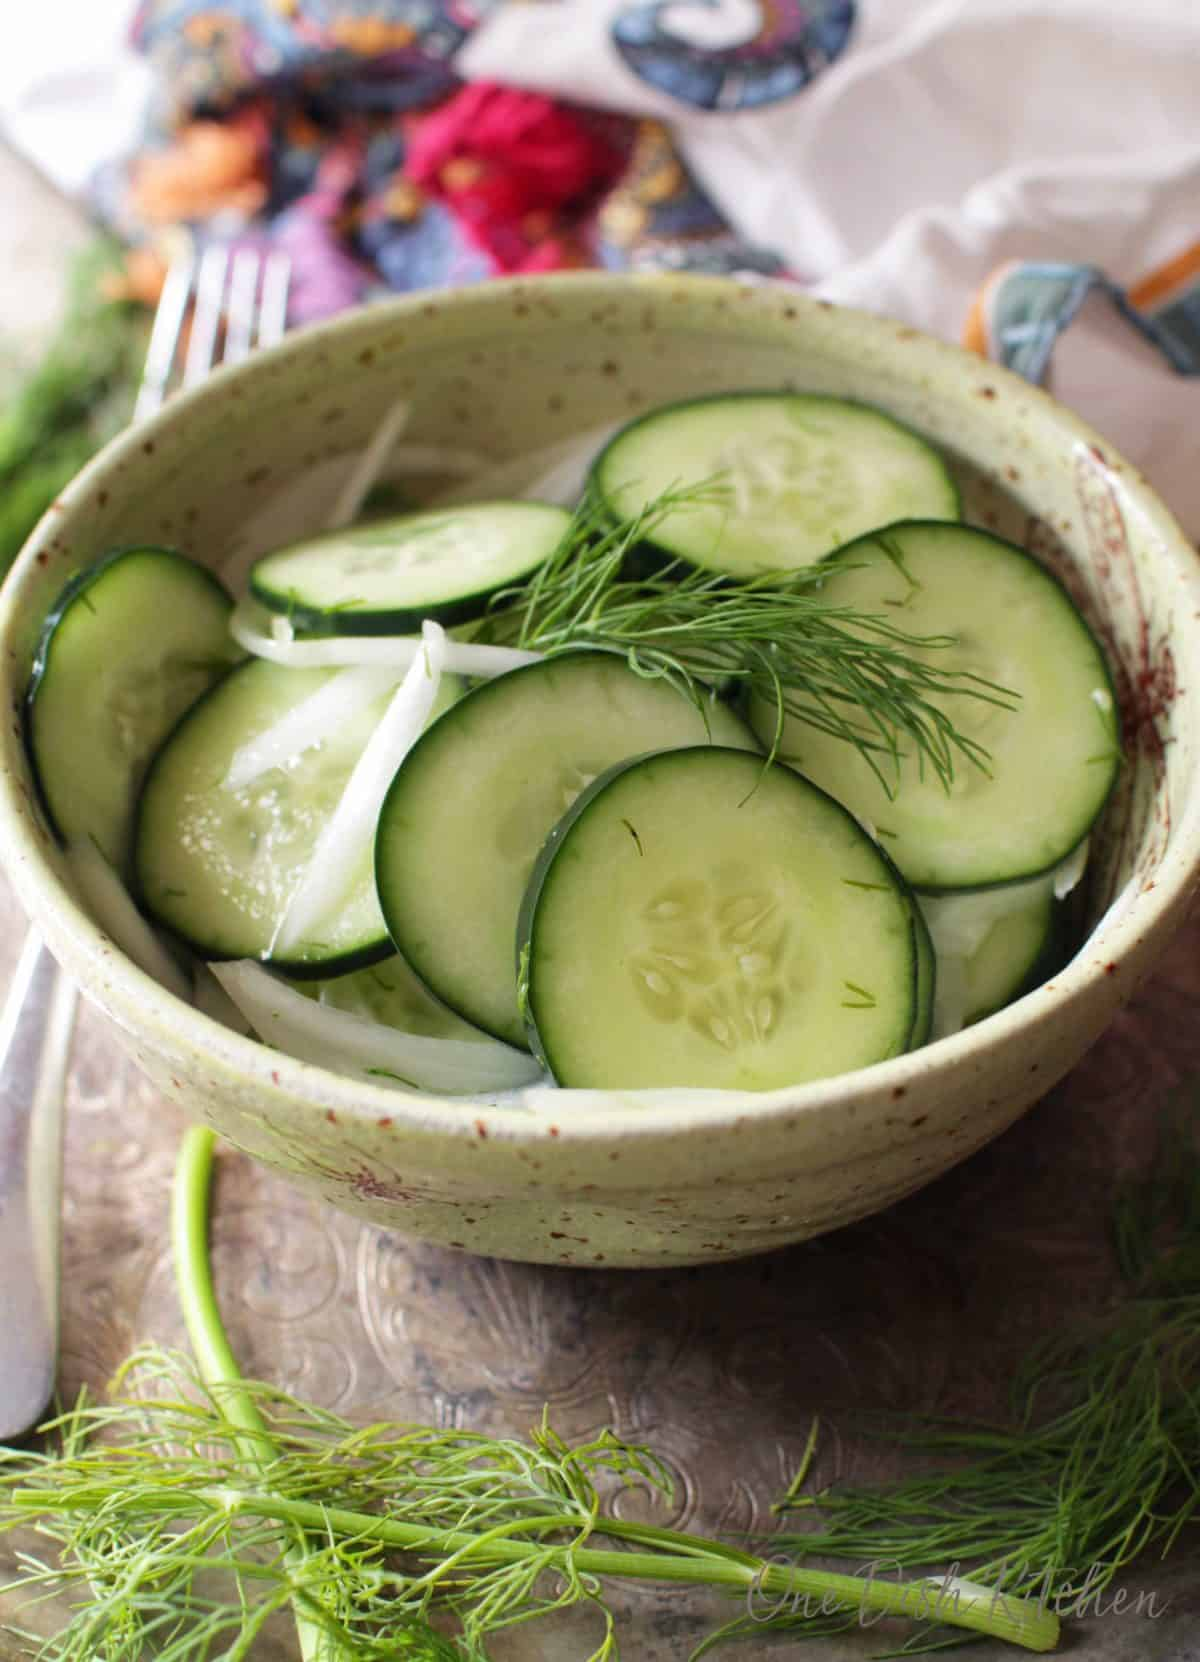 Sliced cucumbers and onions topped with fresh dill in a small bowl